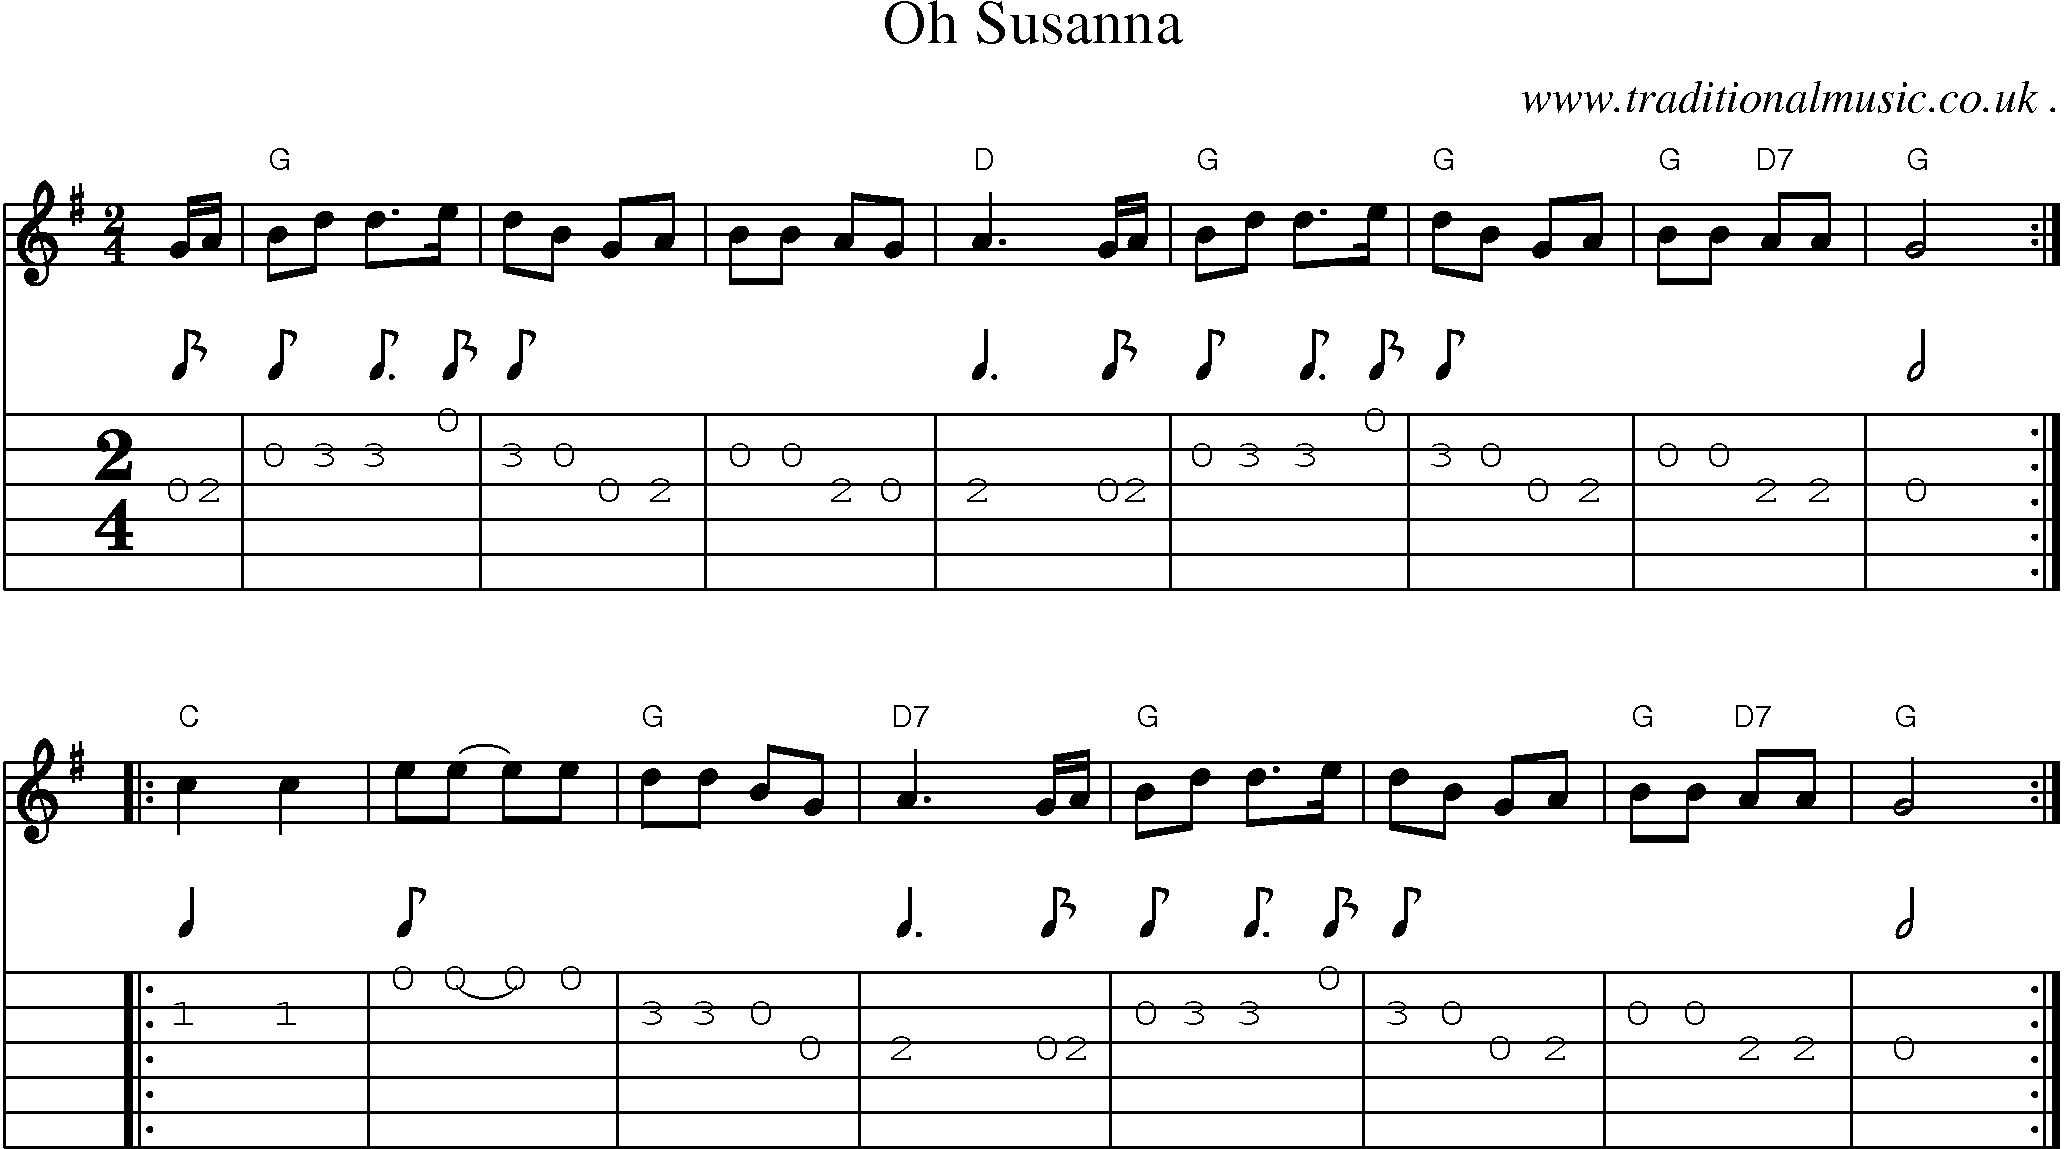 American Old Time Music Scores And Tabs For Guitar Oh Susanna